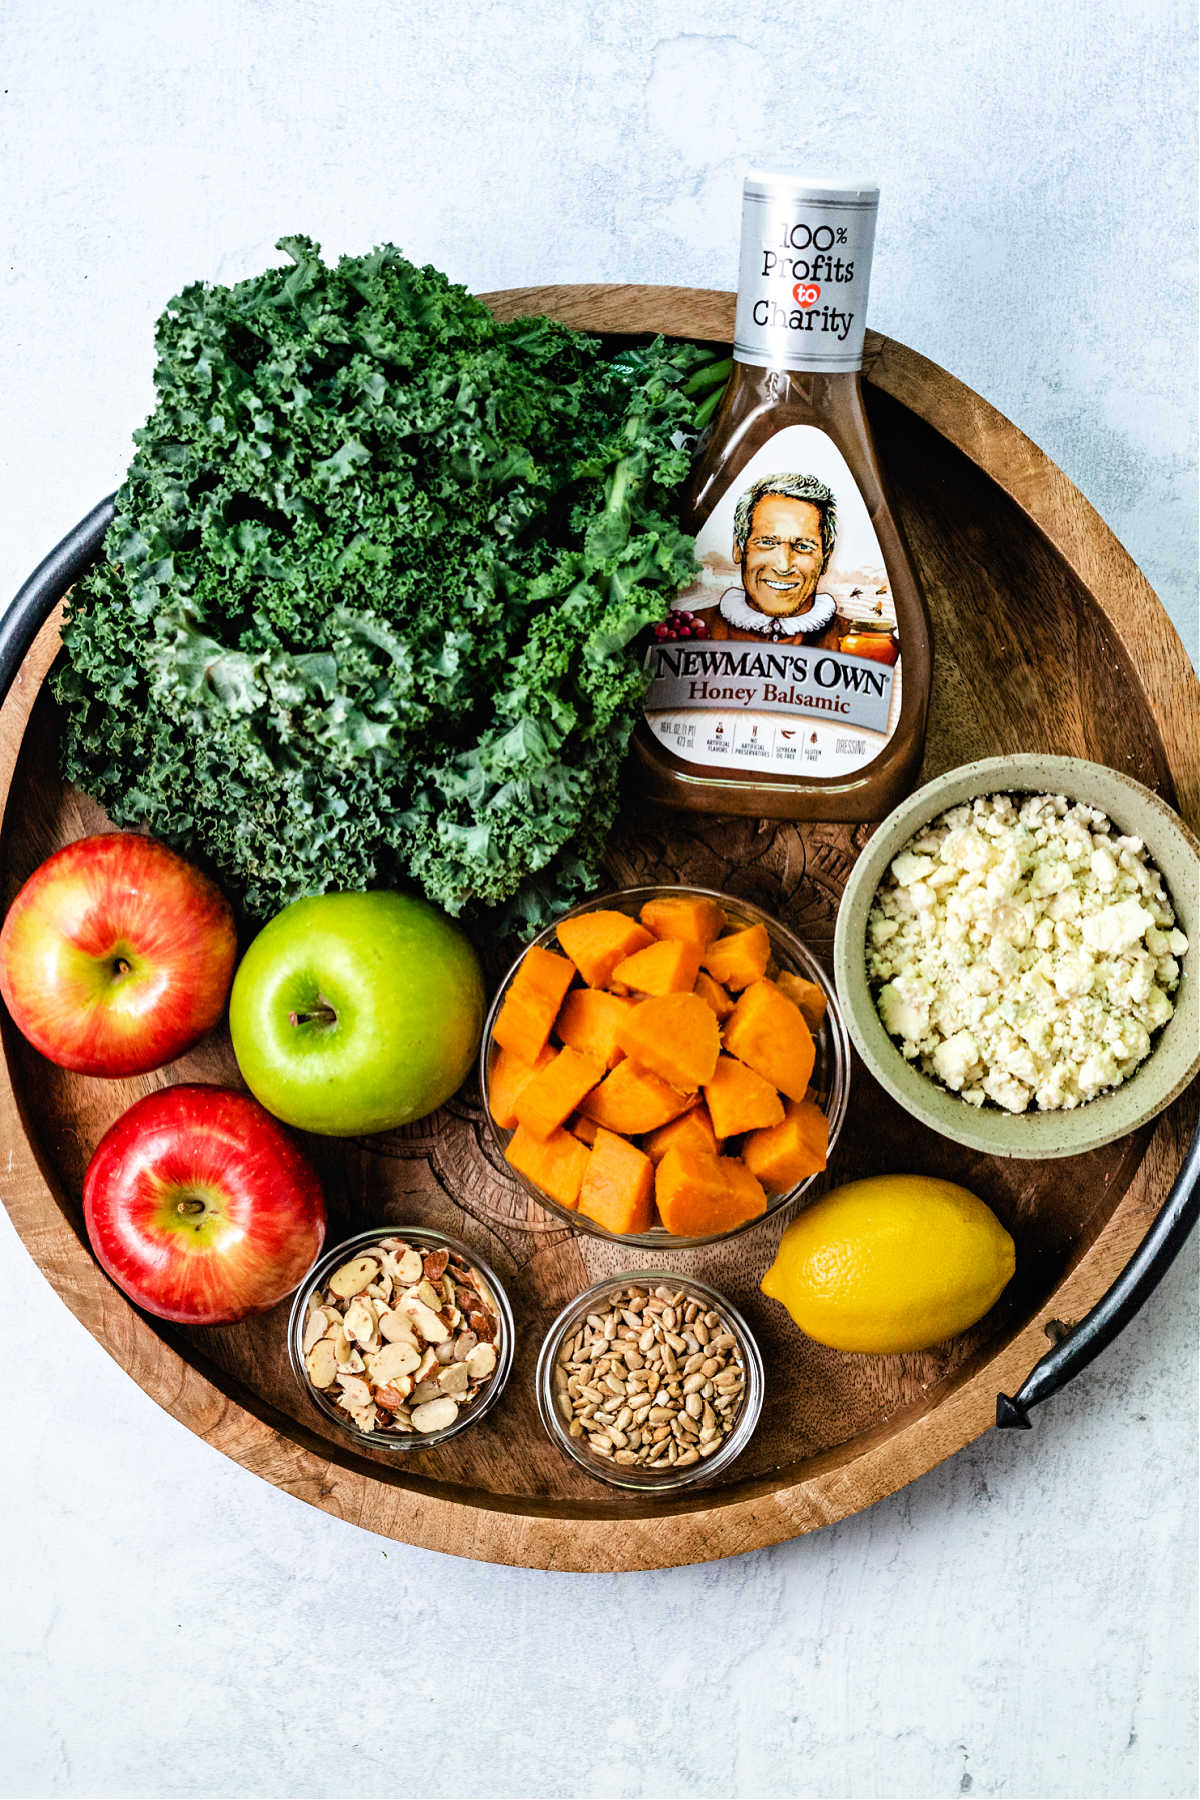 ingredients for harvest chicken salad on a wooden tray: a bunch of curly kale, apples, blue cheese crumbles, balsamic dressing, a lemon, sunflower seeds, a bowl of sweet potato chunks, and almonds.